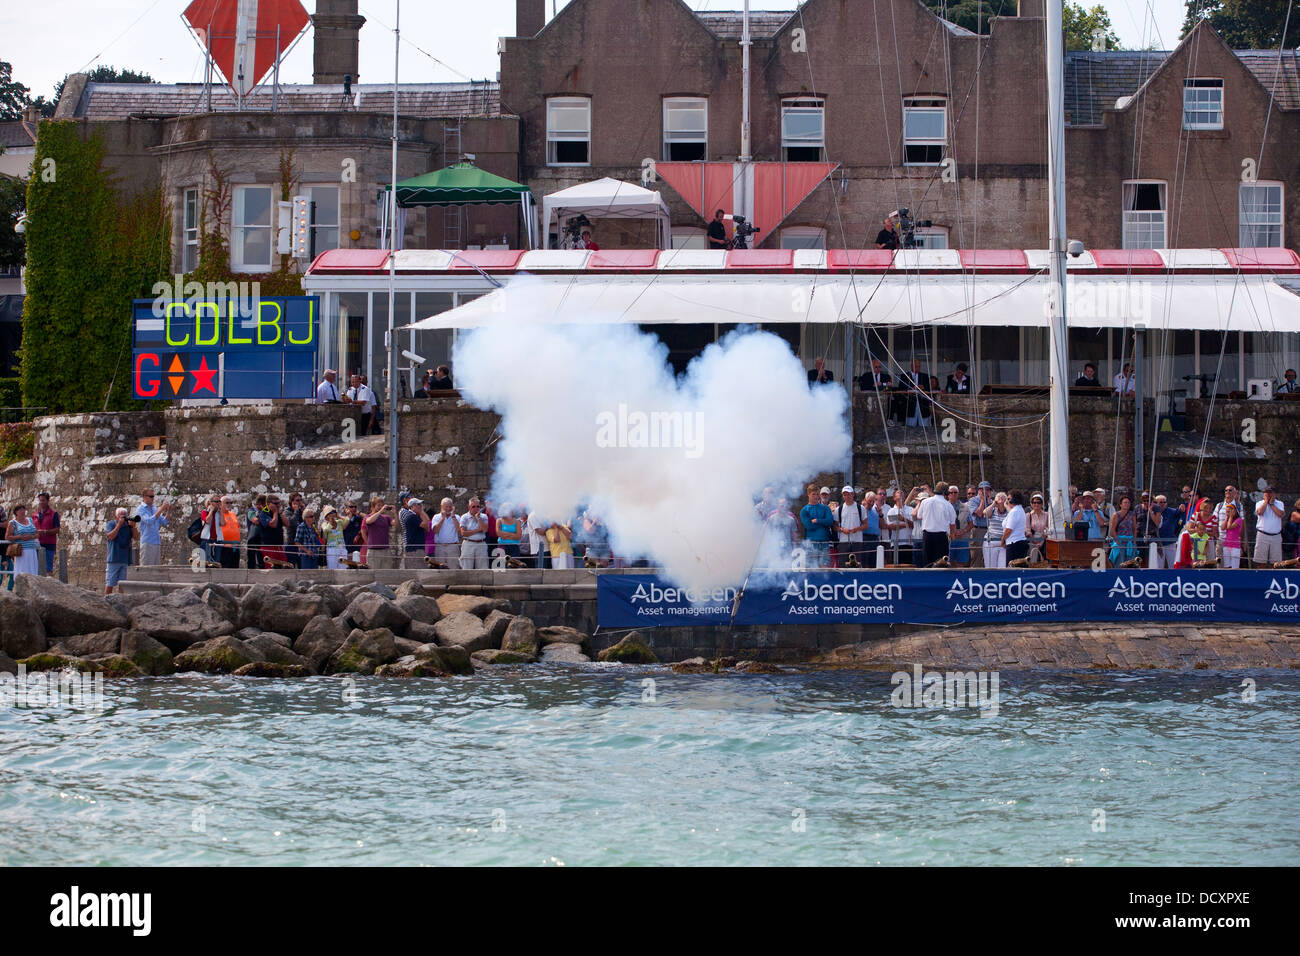 Cannon Smoke blast Royal Yacht Squadron Cowes Week spectators yacht racing finish start Aberdeen Asset Management - Stock Image